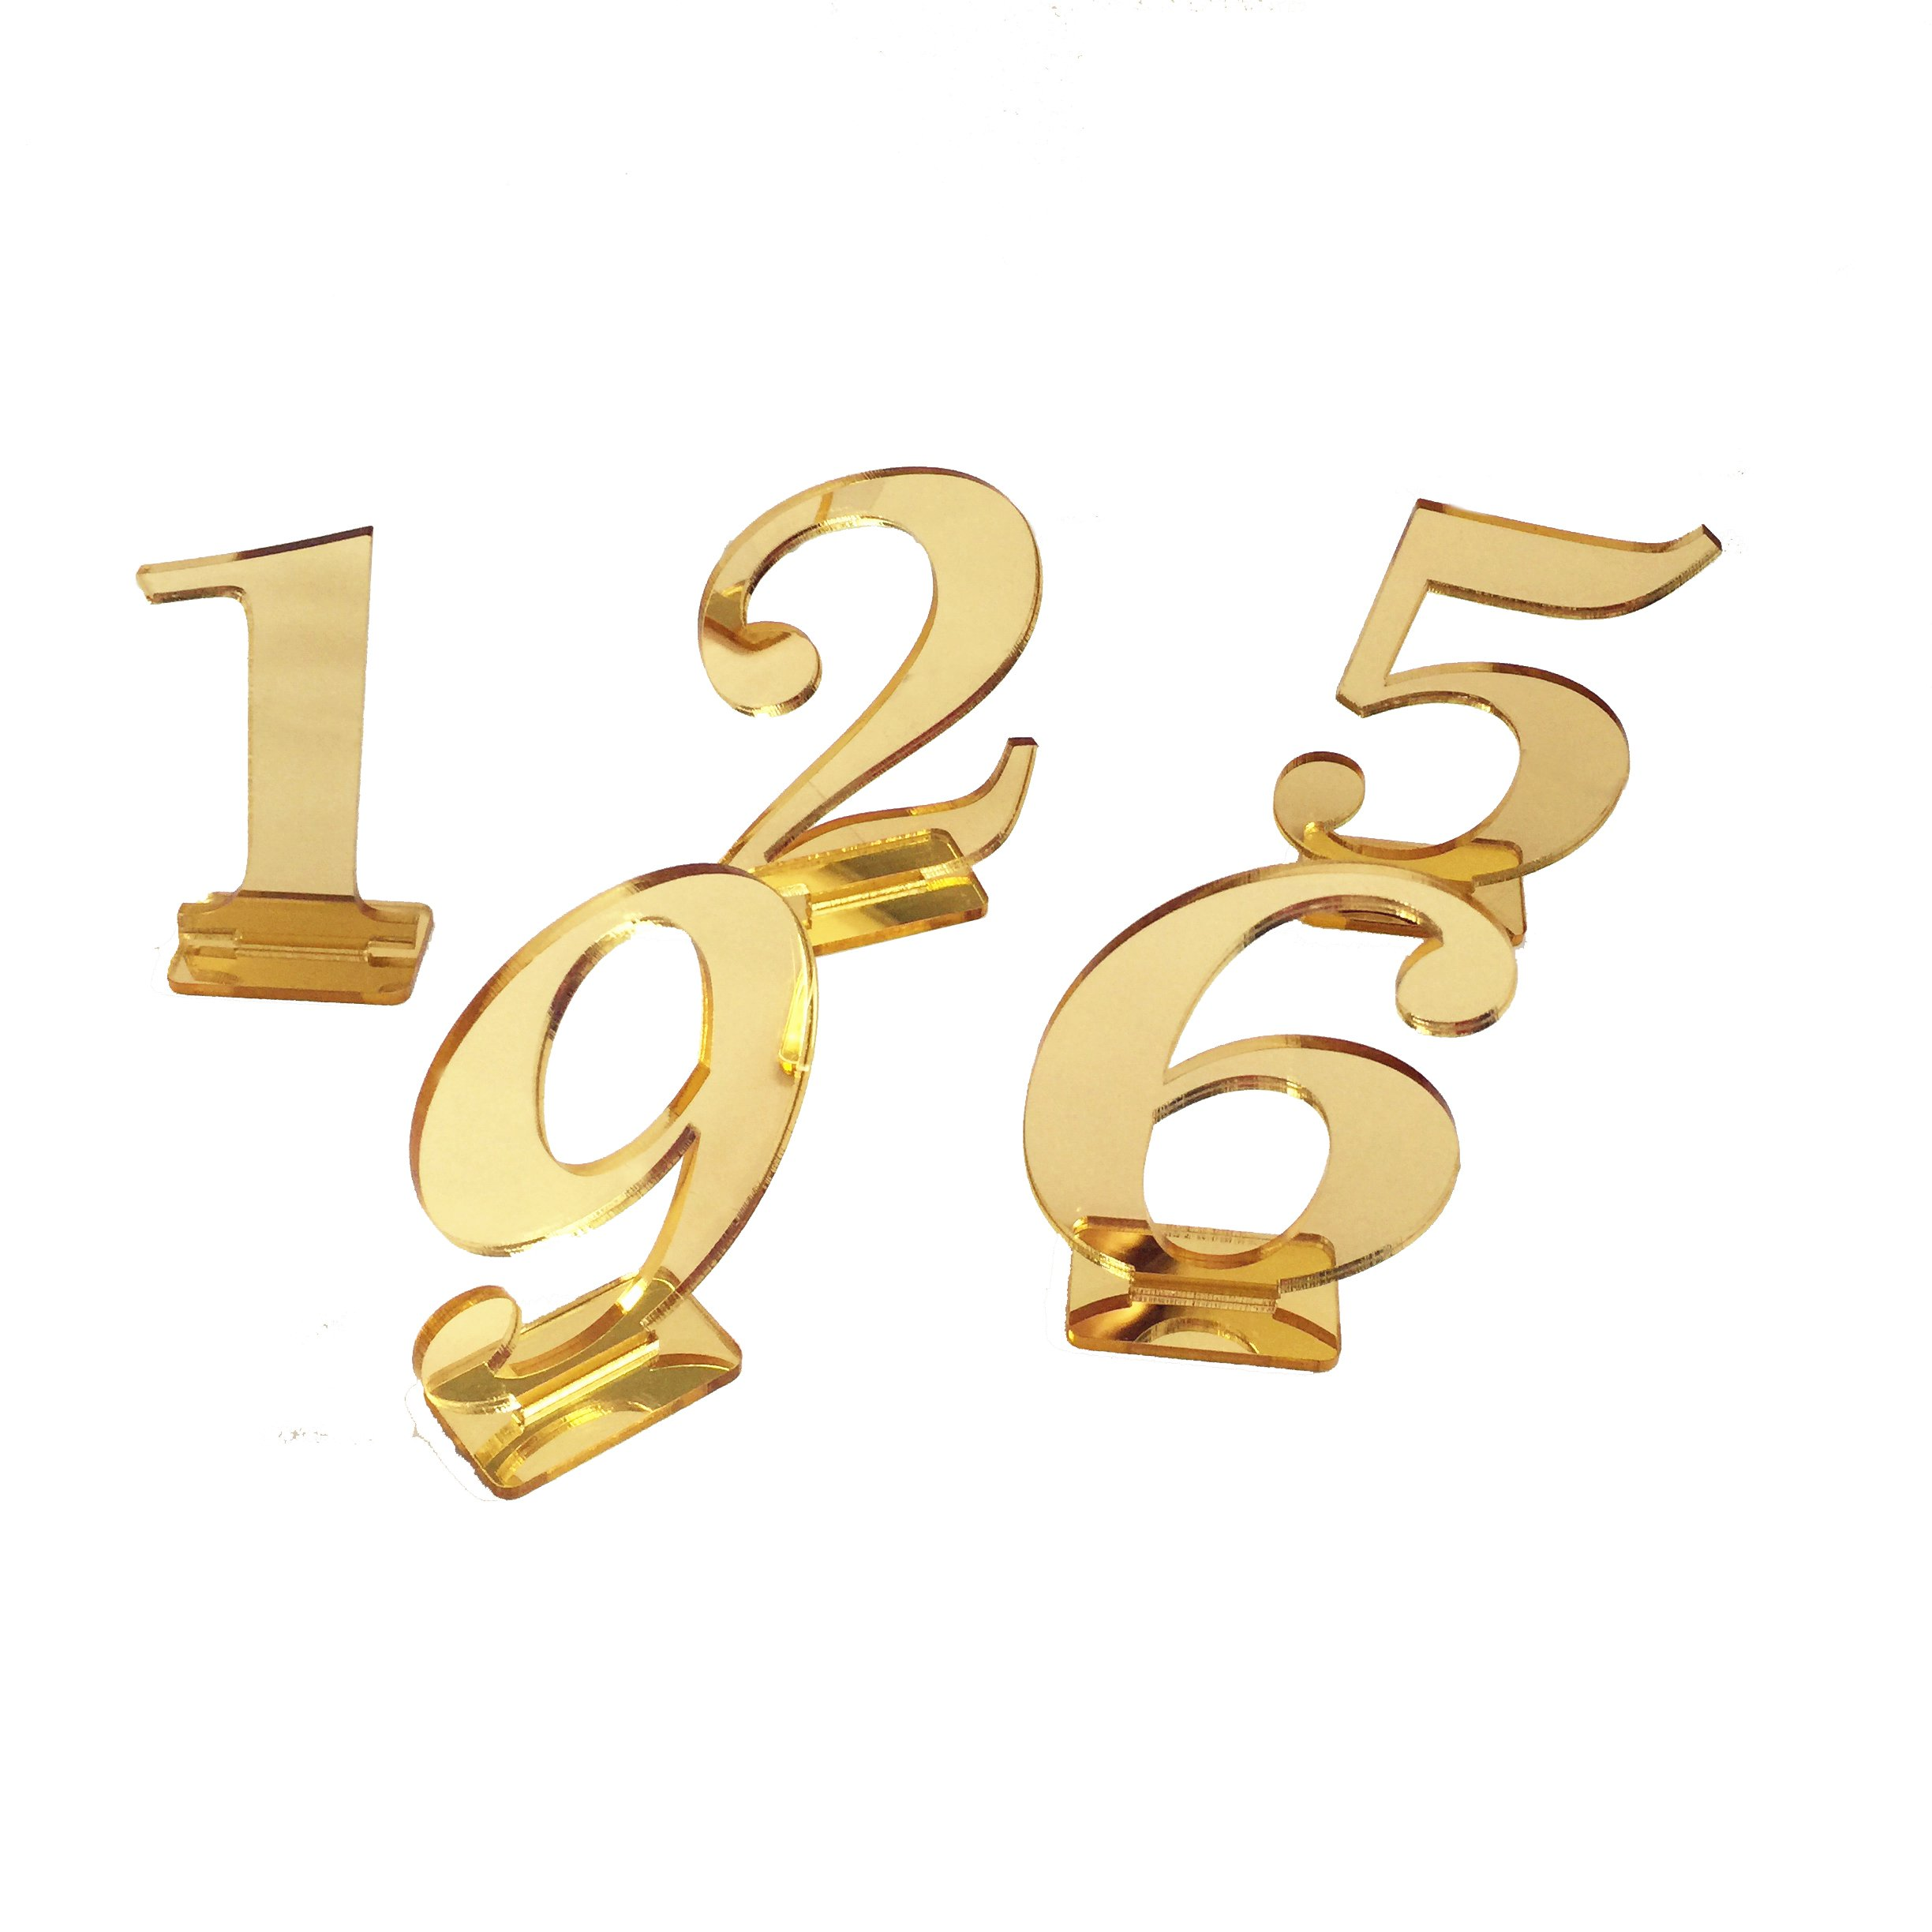 iEventStar Mirror Gold Table Number with Holder Base for Wedding Events (1-10)